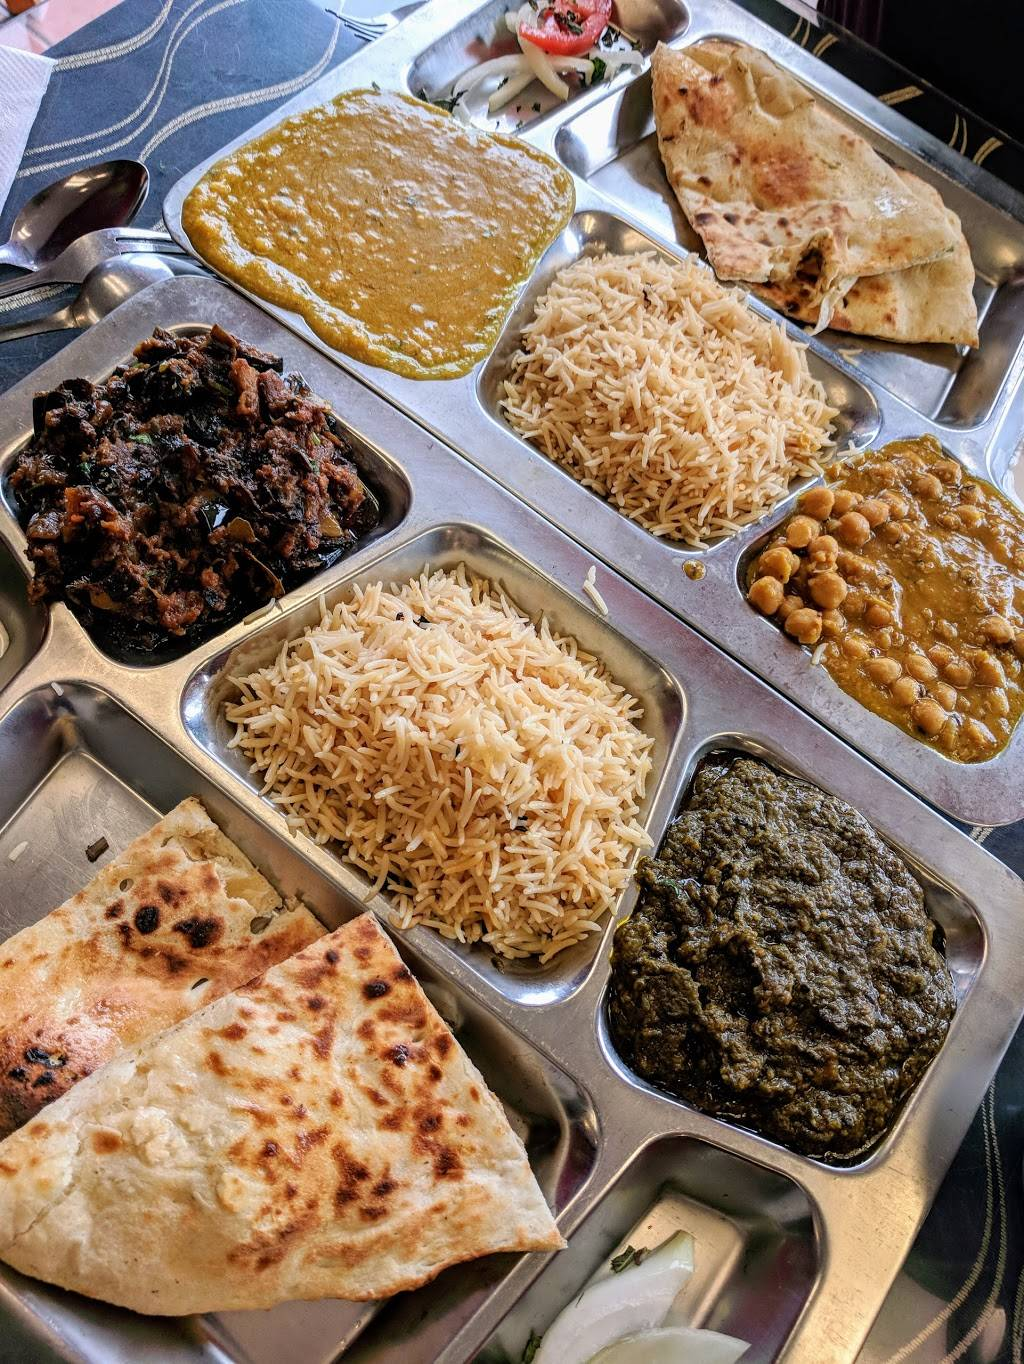 BBQ N Curry House | restaurant | 160 Donahue St, Sausalito, CA 94965, USA | 4152890786 OR +1 415-289-0786